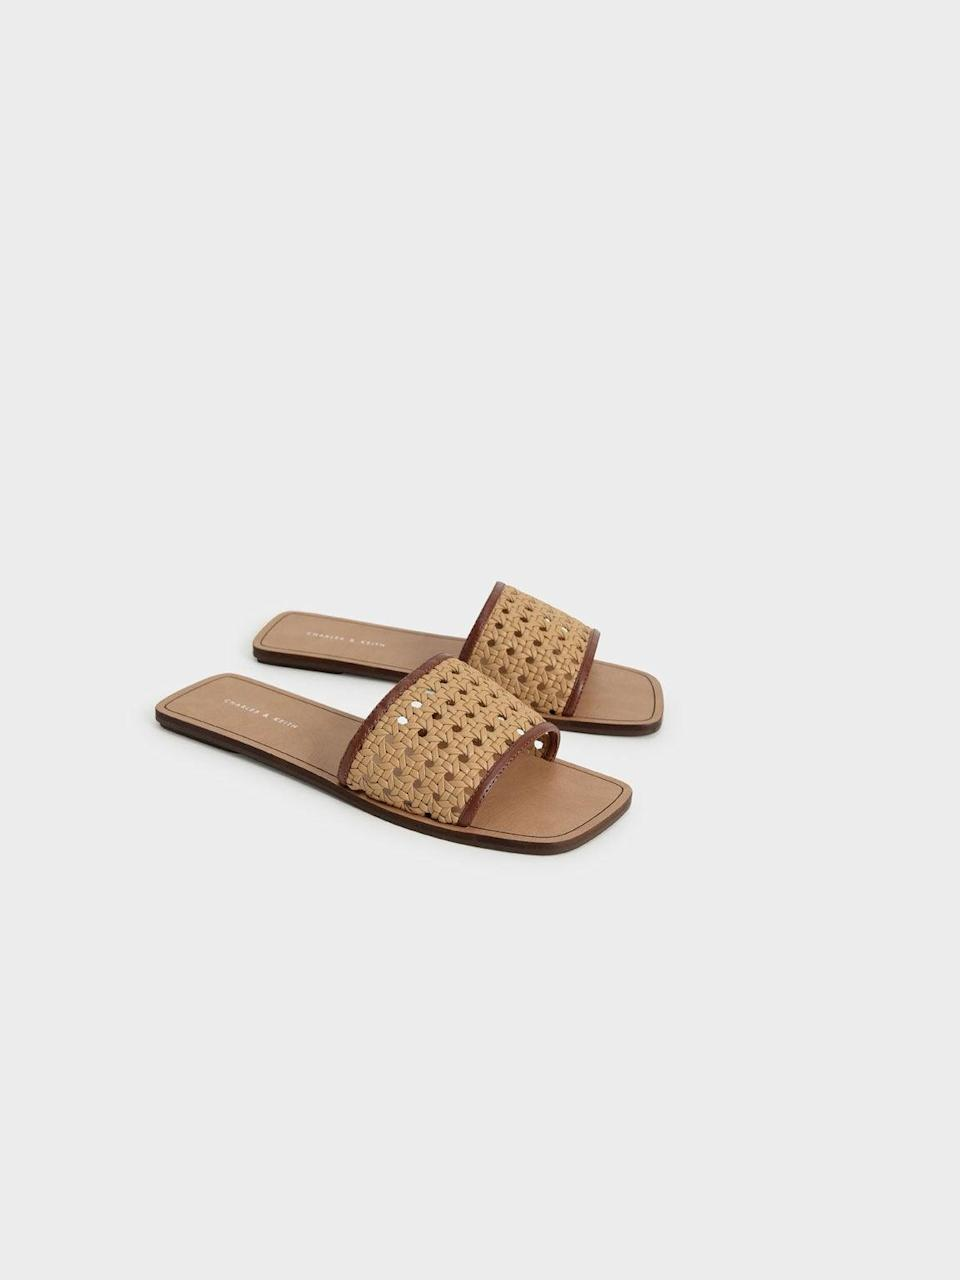 """<br><br><strong>Charles & Keith</strong> Woven Slide Sandals, $, available at <a href=""""https://go.skimresources.com/?id=30283X879131&url=https%3A%2F%2Fwww.charleskeith.com%2Fus%2Fshoes%2FCK1-70380867_BROWN.html"""" rel=""""nofollow noopener"""" target=""""_blank"""" data-ylk=""""slk:Charles & Keith"""" class=""""link rapid-noclick-resp"""">Charles & Keith</a>"""